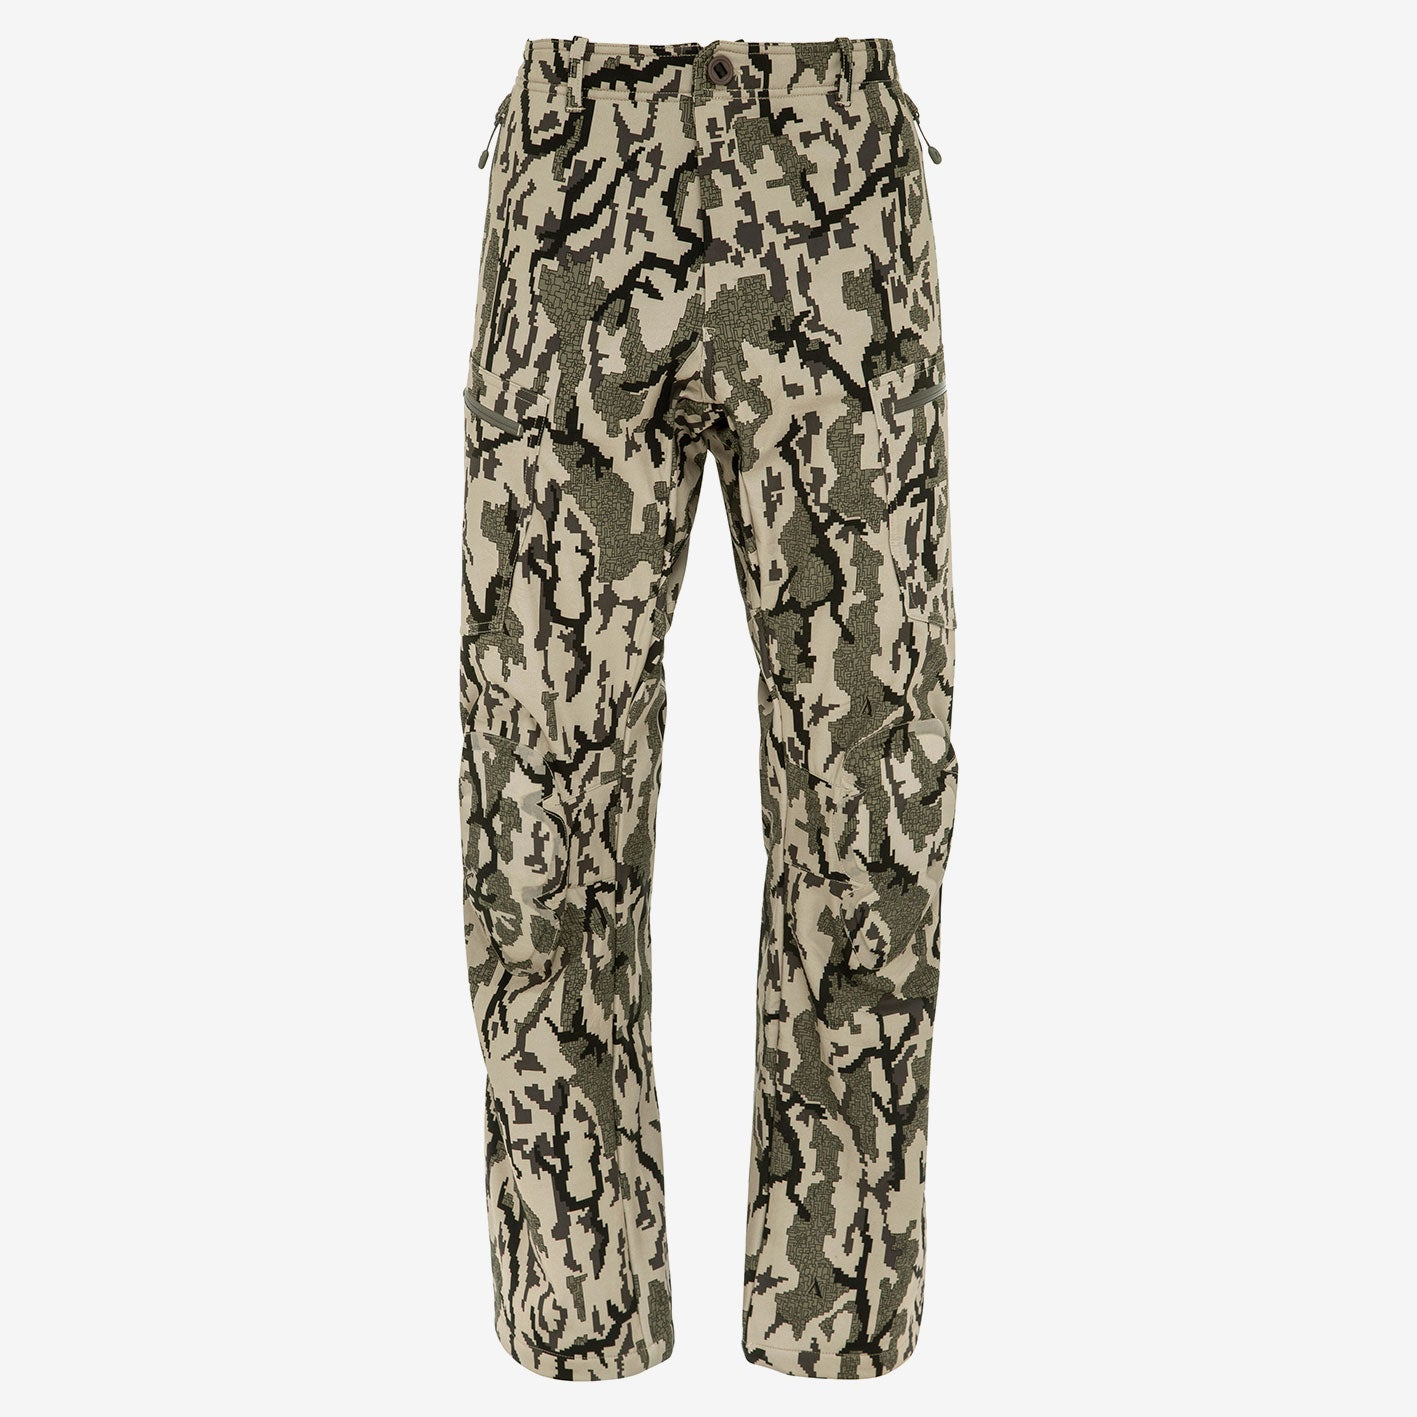 2018 - Mens Hunting Pants - Peak Season Pant